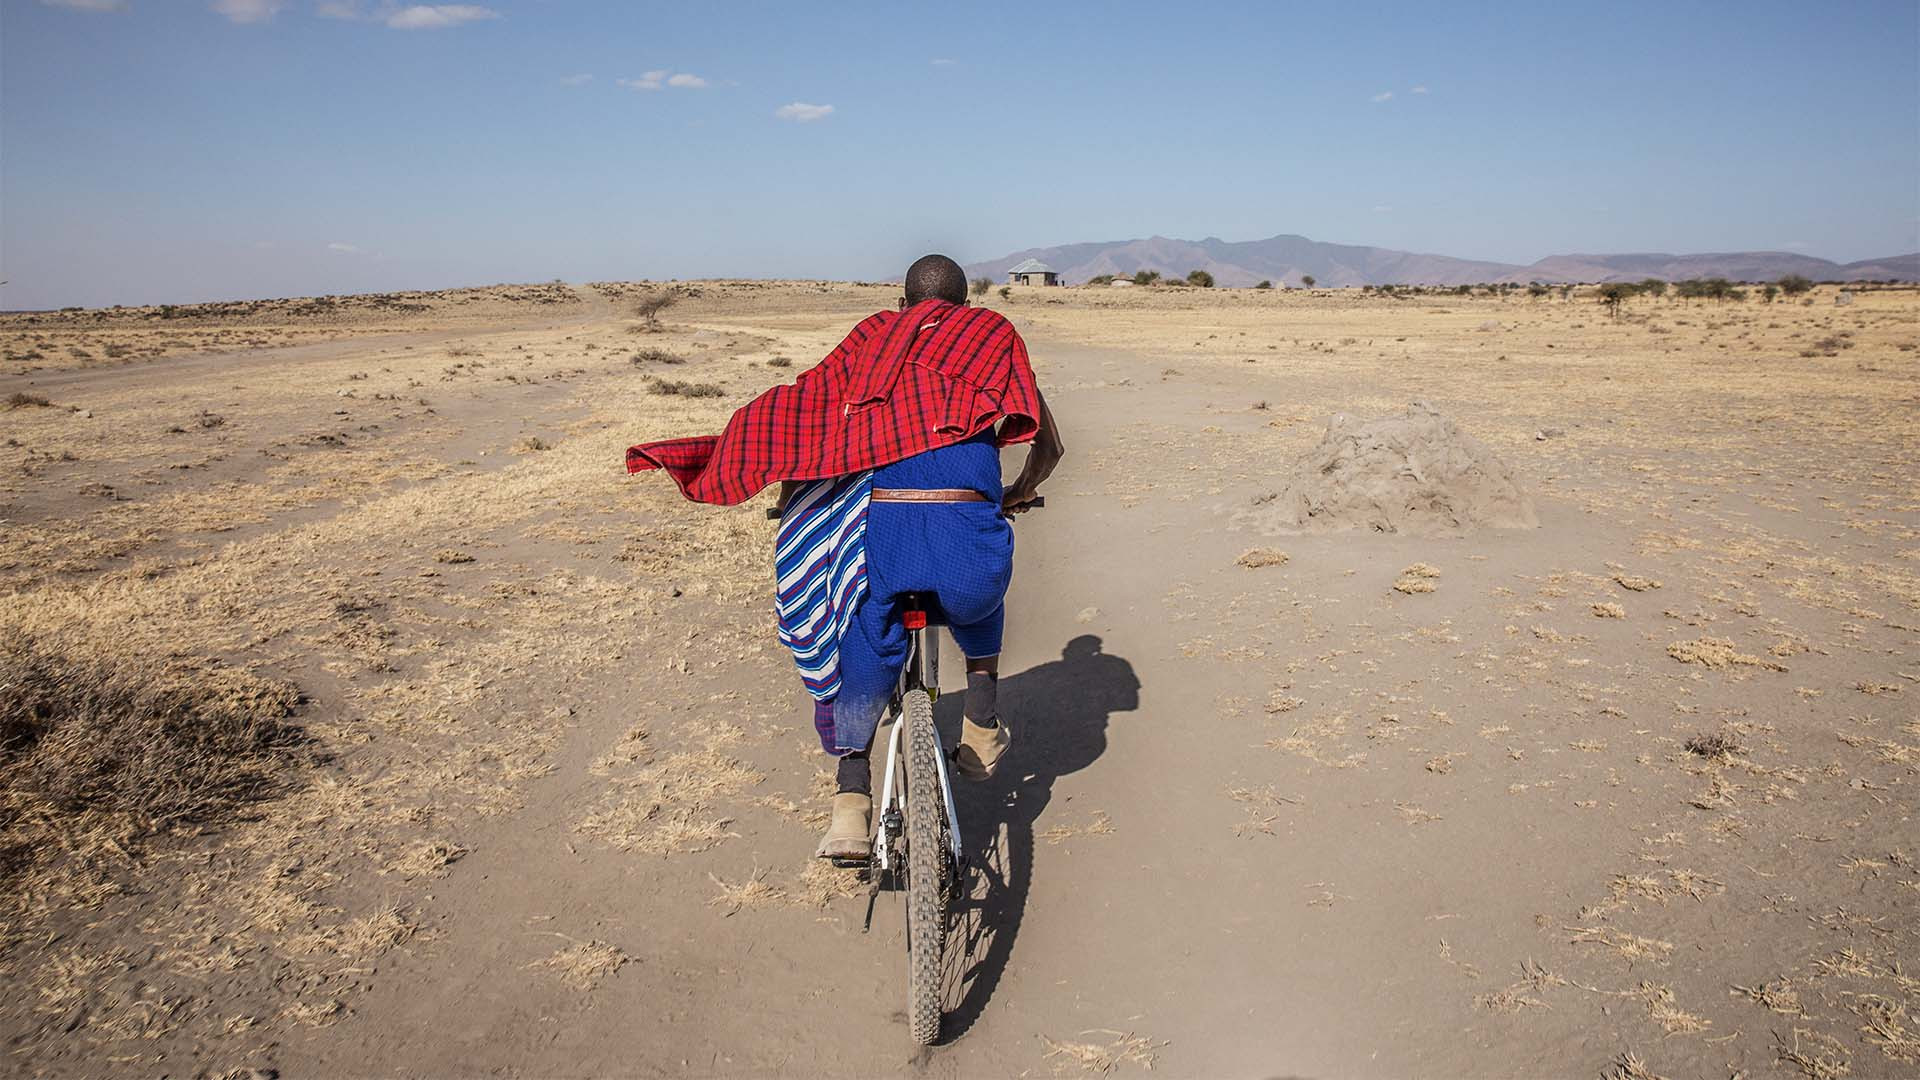 Cycling in Tanzania, Africa